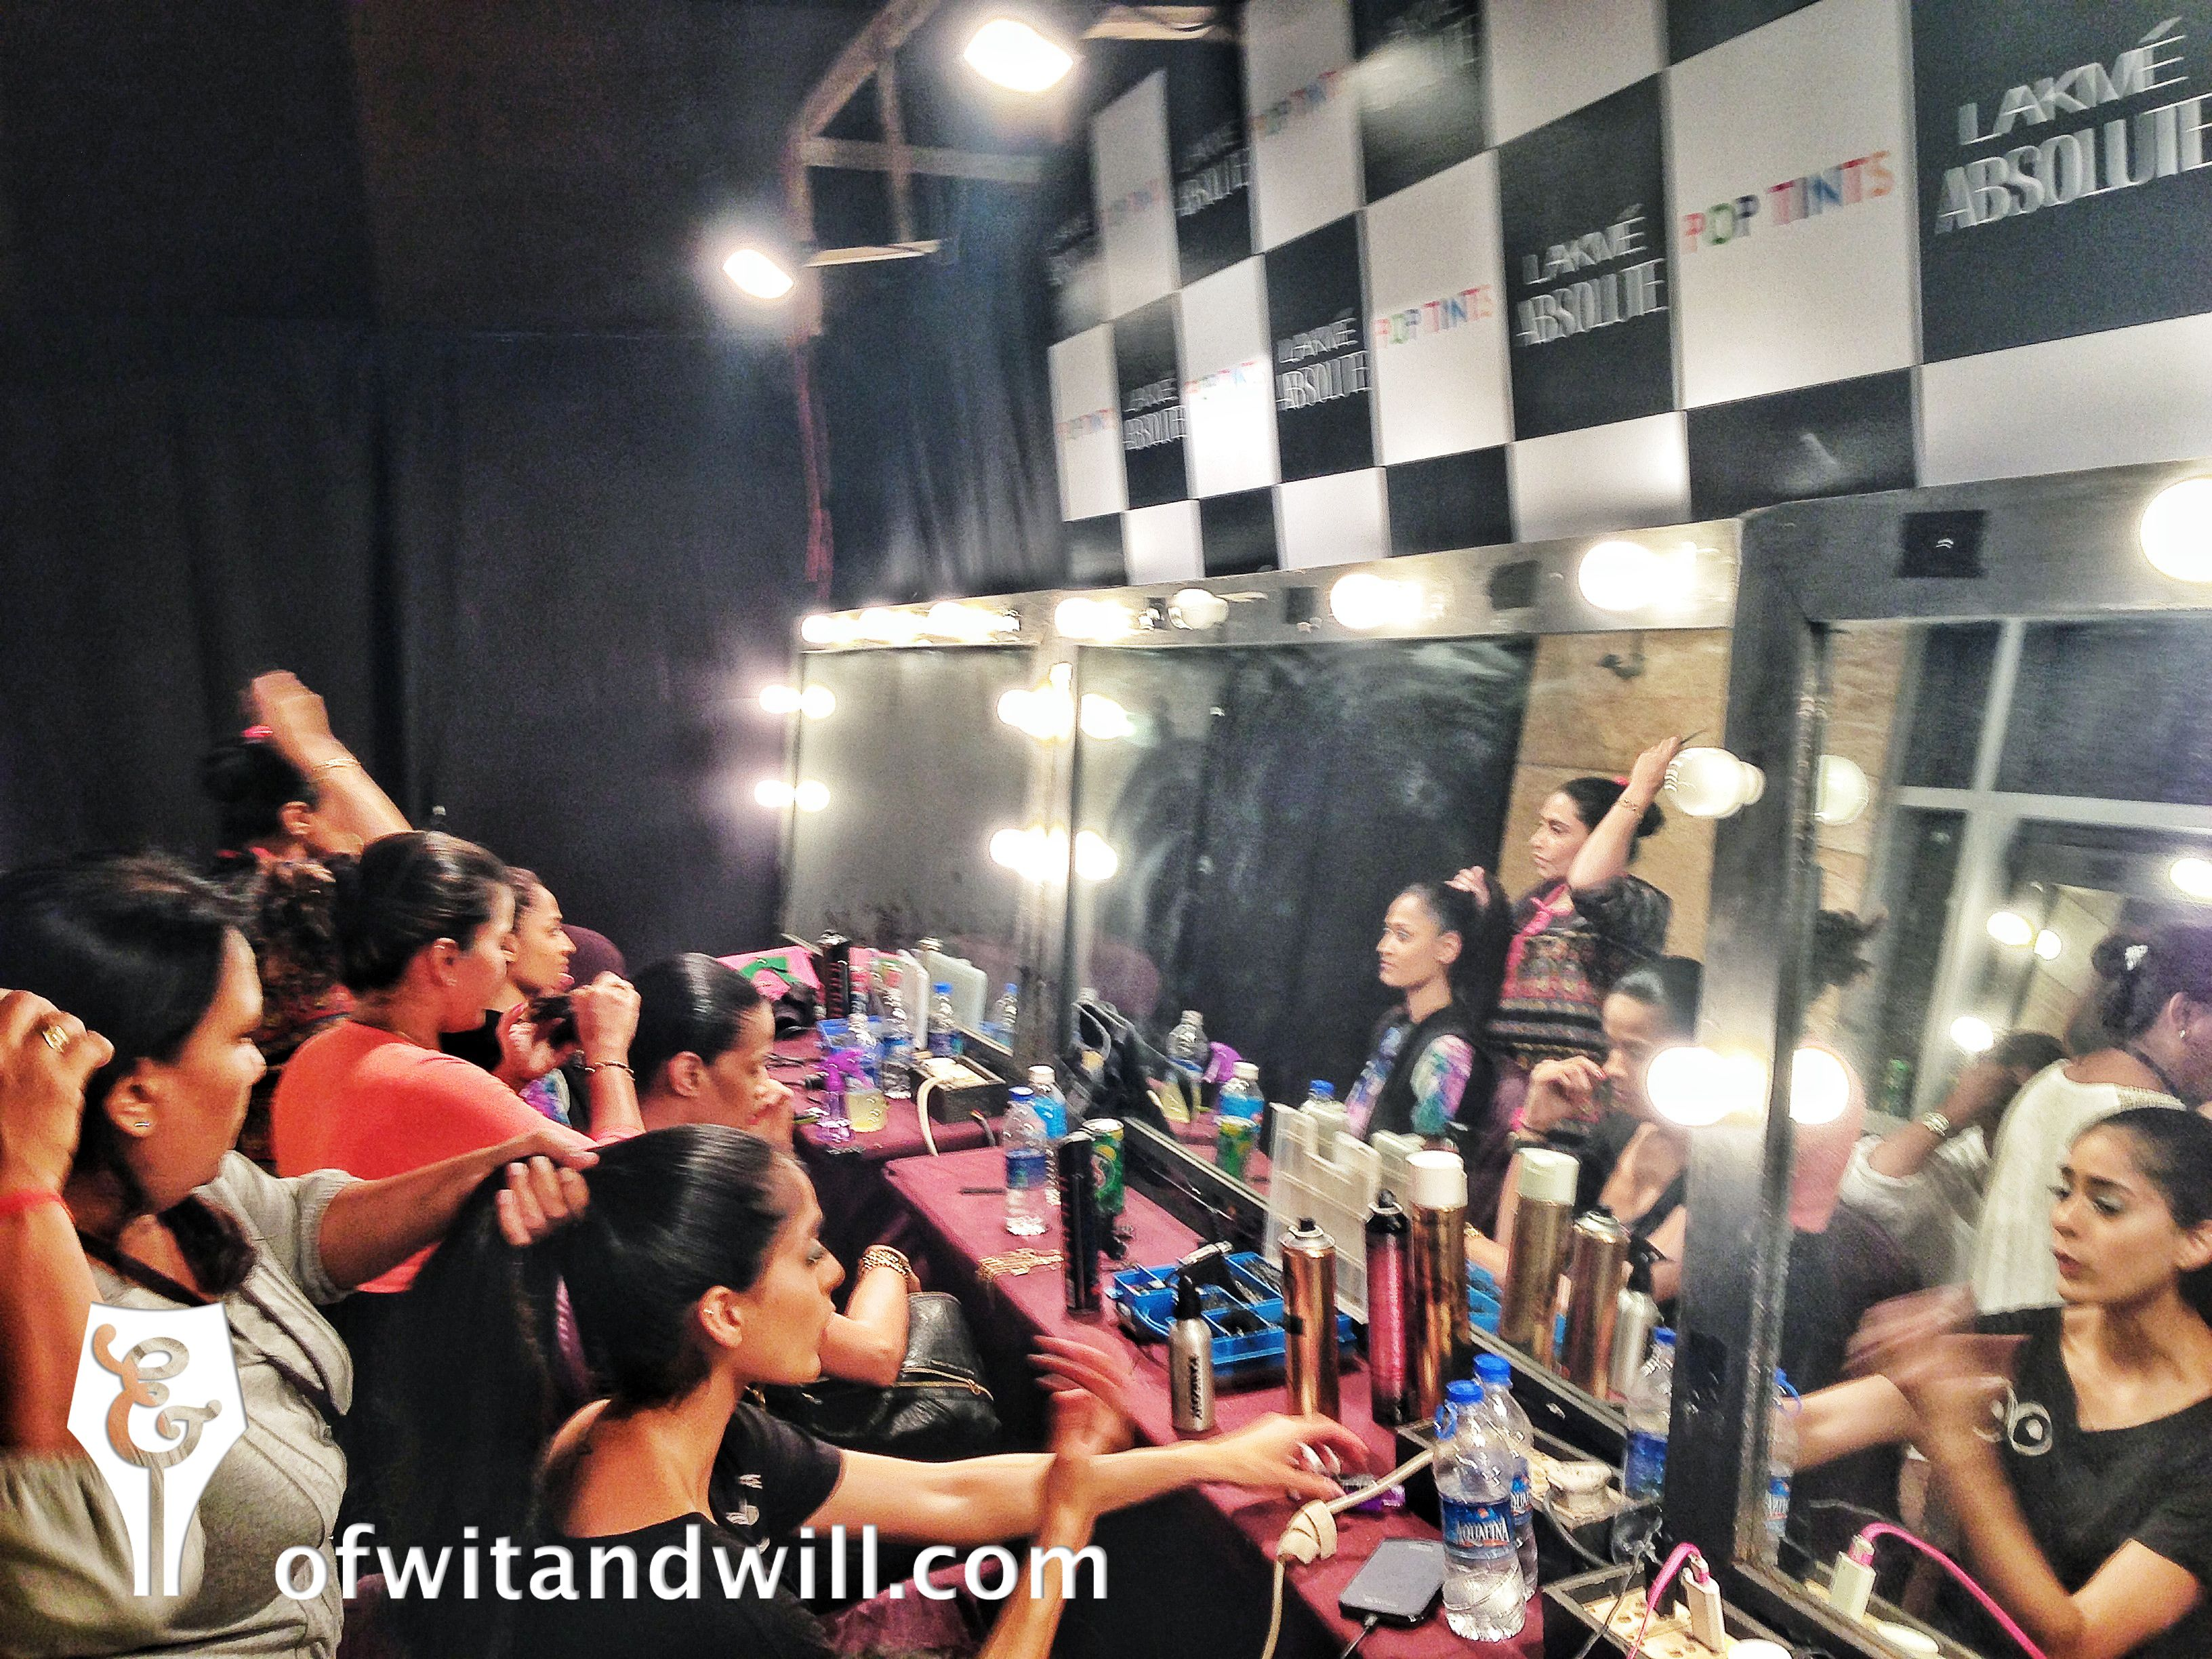 Models, designers and lots of hairspray... Backstage at India's fashion event of the season-- Lakme Fashion Week!